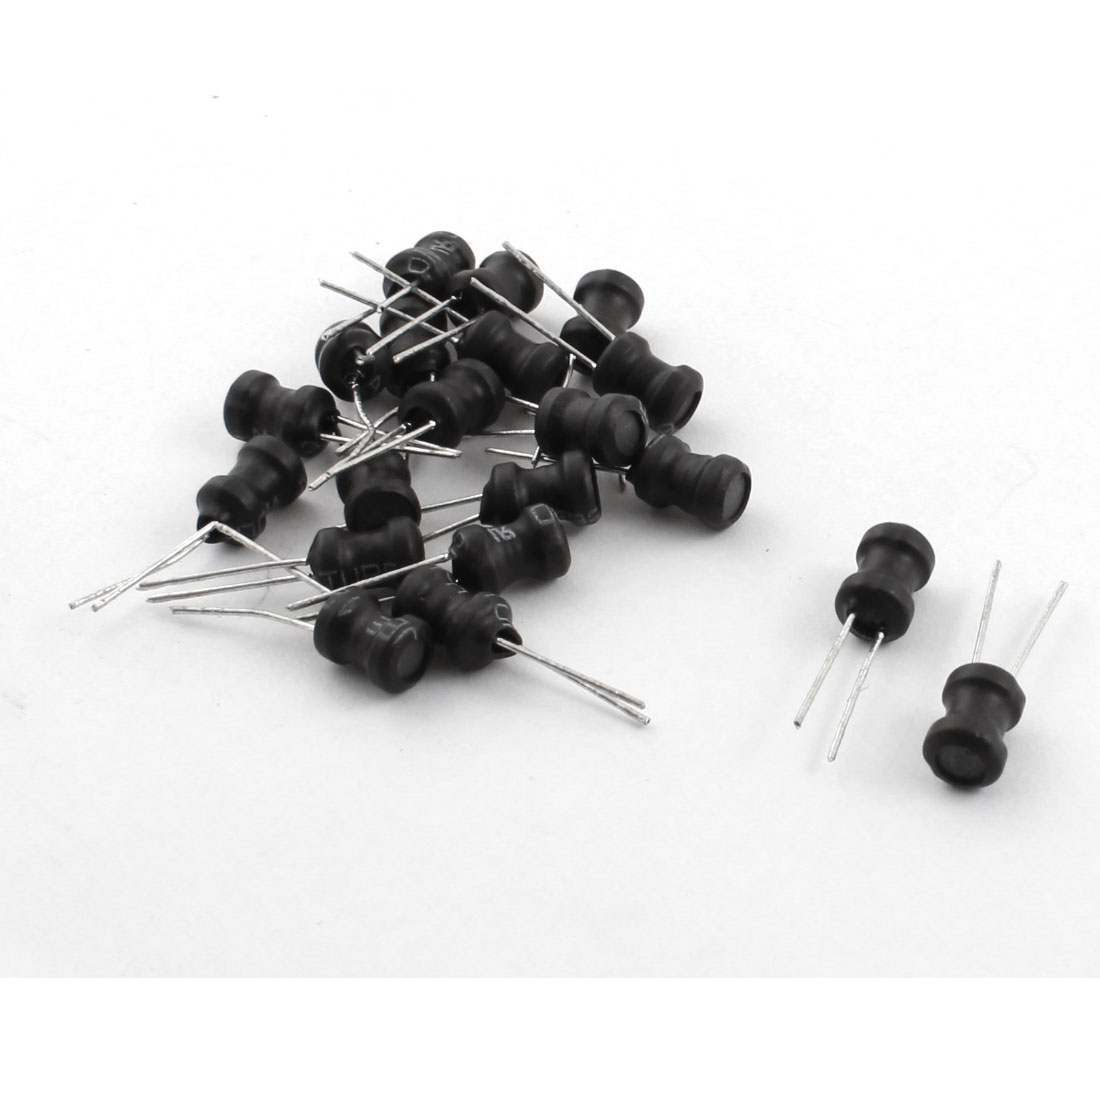 20Pcs 2.2mH 400mA 10% Tolerance Through Hole Radial Lead Type Coil Choke Inductor 6mm x 8mm